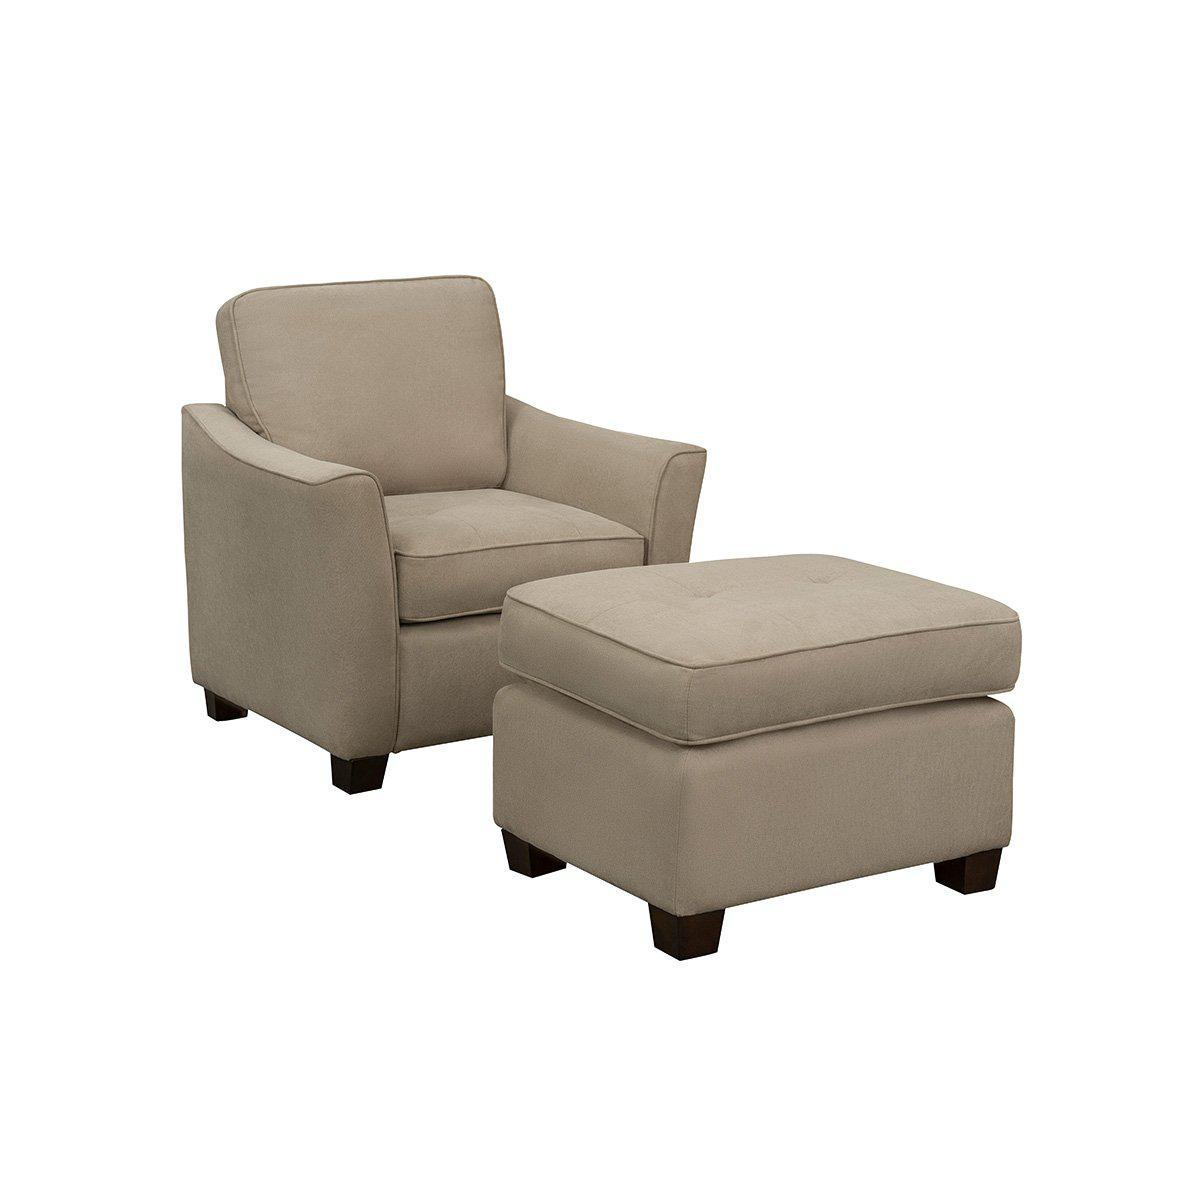 Dodge Sofa Chair-Jennifer Furniture